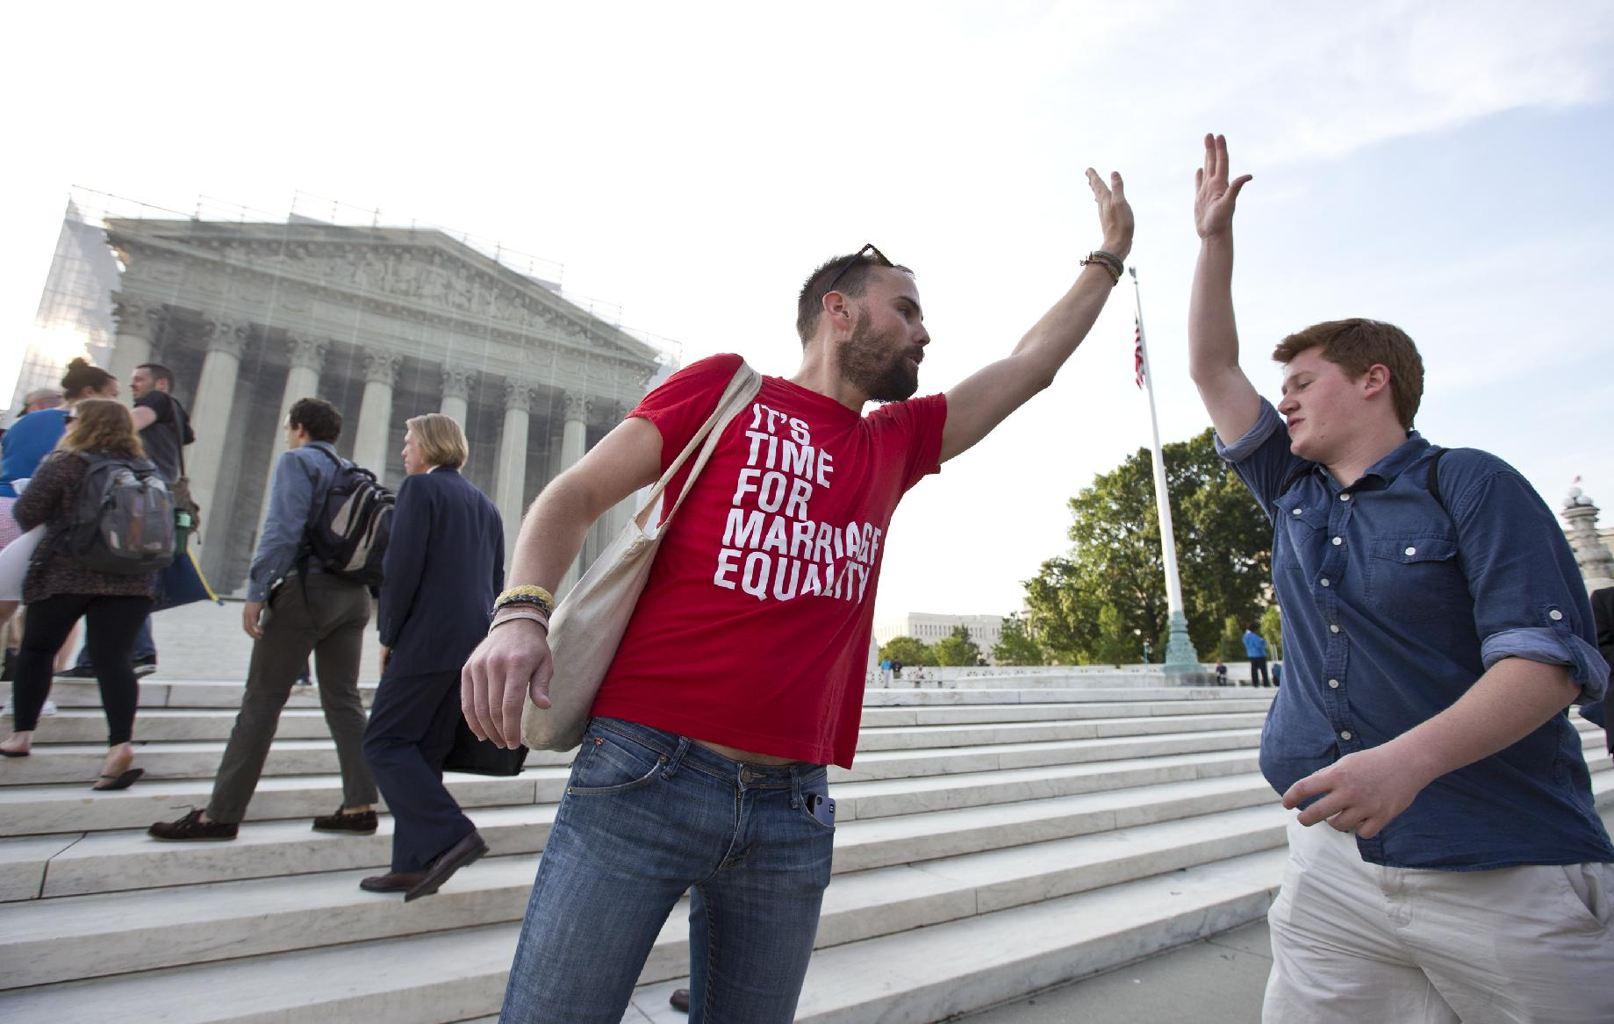 Gay rights activist Bryce Romero, who works for the Human Rights Campaign, offers an enthusiastic high-five to visitors getting in line to enter the Supreme Court on a day when justices are expected to hand down major rulings on two gay marriage cases that could impact same-sex couples across the country, in Washington, Wednesday. (AP Photo/J. Scott Applewhite)